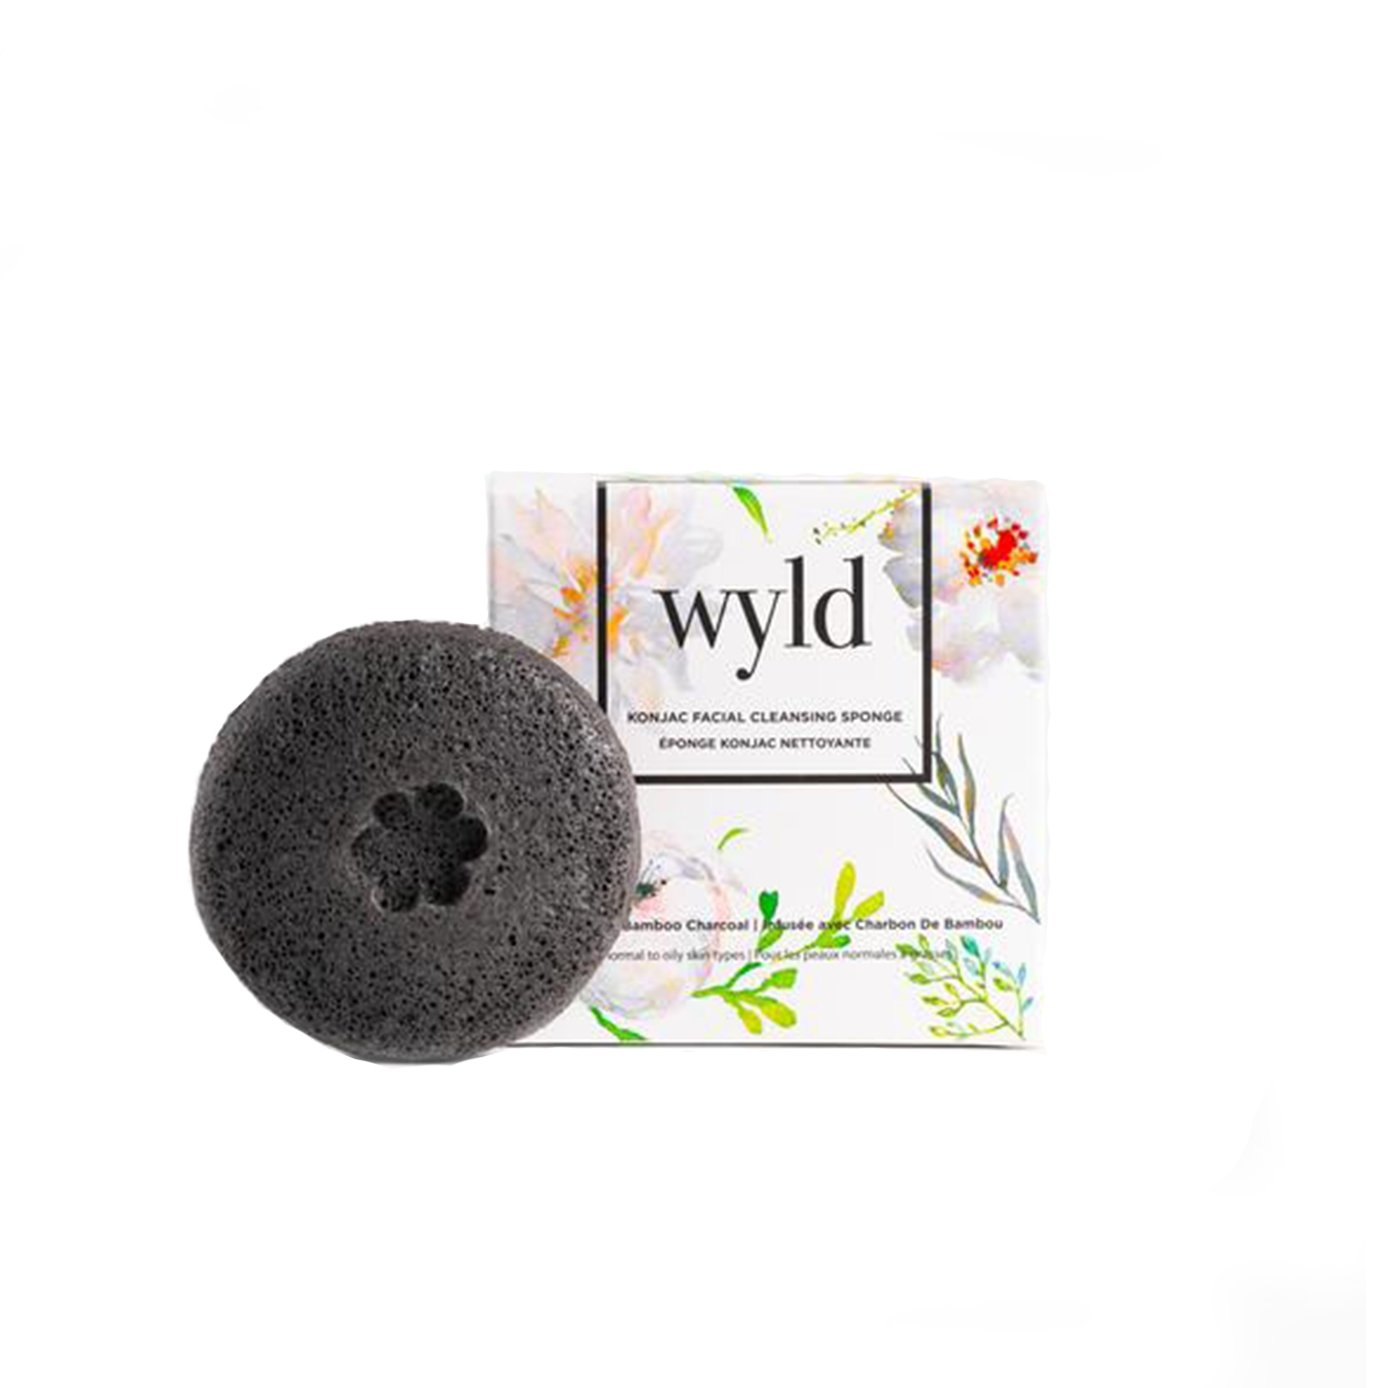 Activated Charcoal Konjac Face Sponge by Wyld Skincare